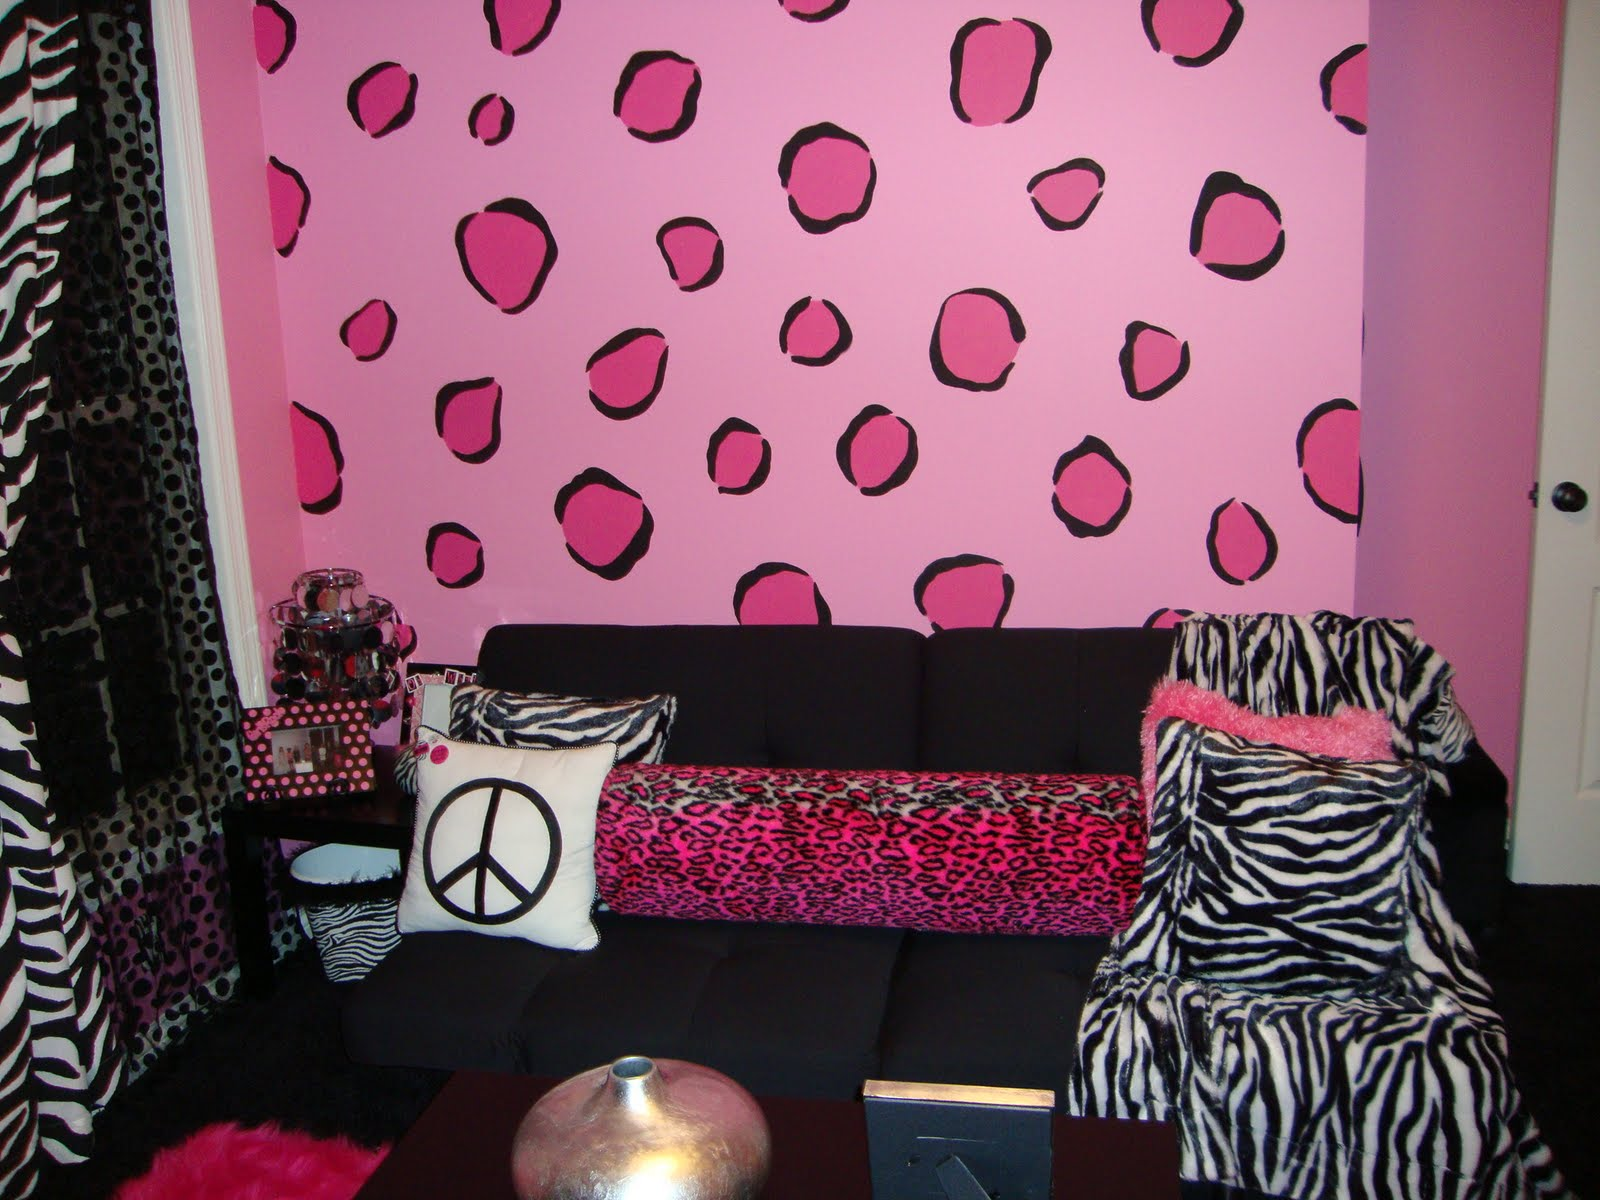 Pink Zebra Bedroom Decorating Ideas 2 Bathroom. Pink Black And White Zebra Bedroom Ideas   Bedroom Style Ideas